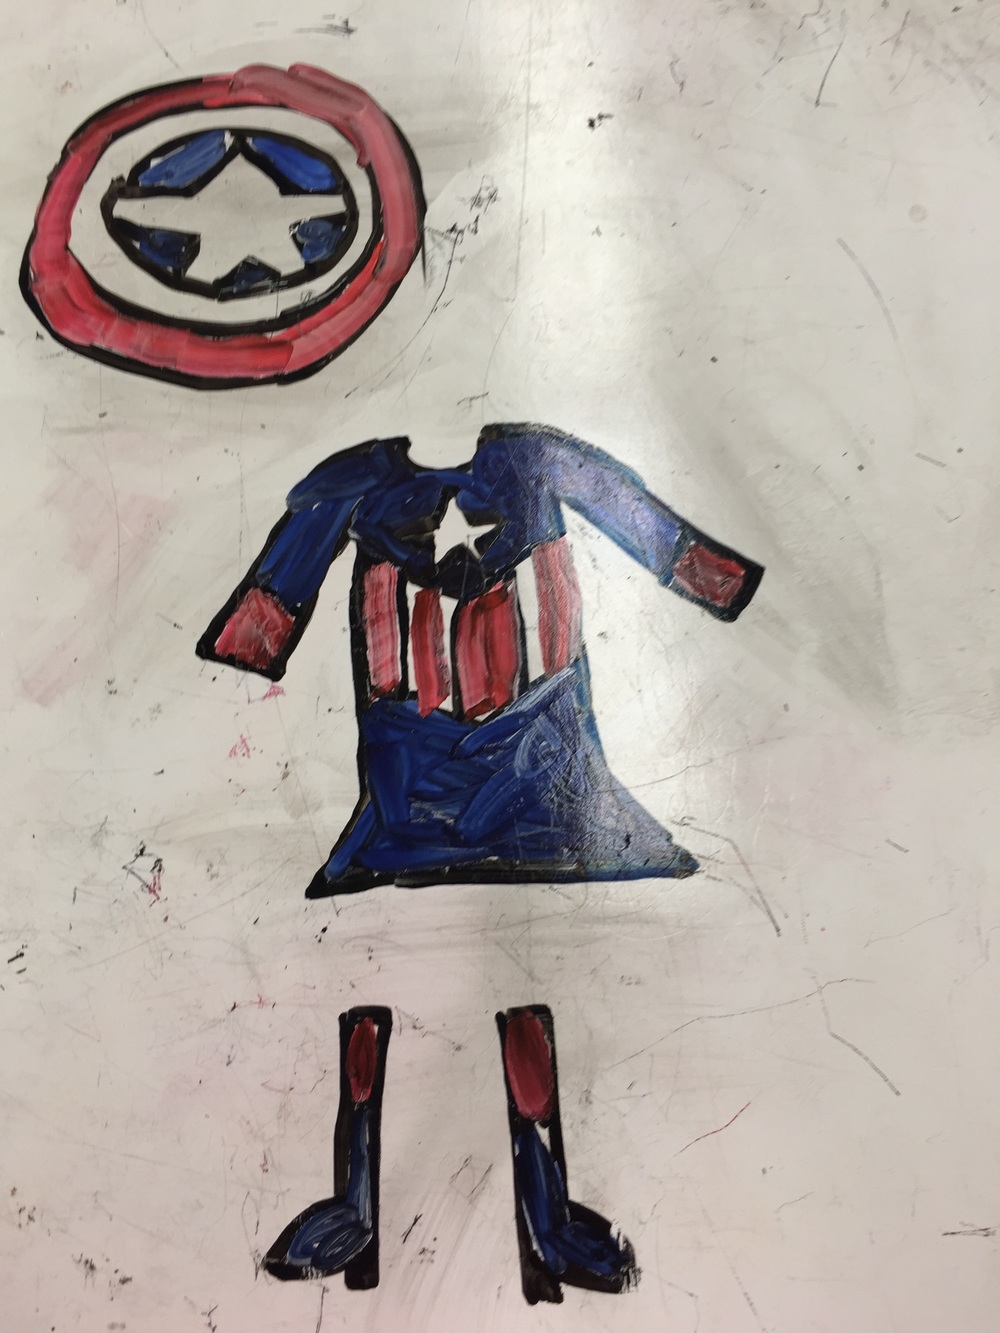 Thank you Grace for sharing your drawing! Her idea for this superhero outfit was inspired by Captain America's outfit.